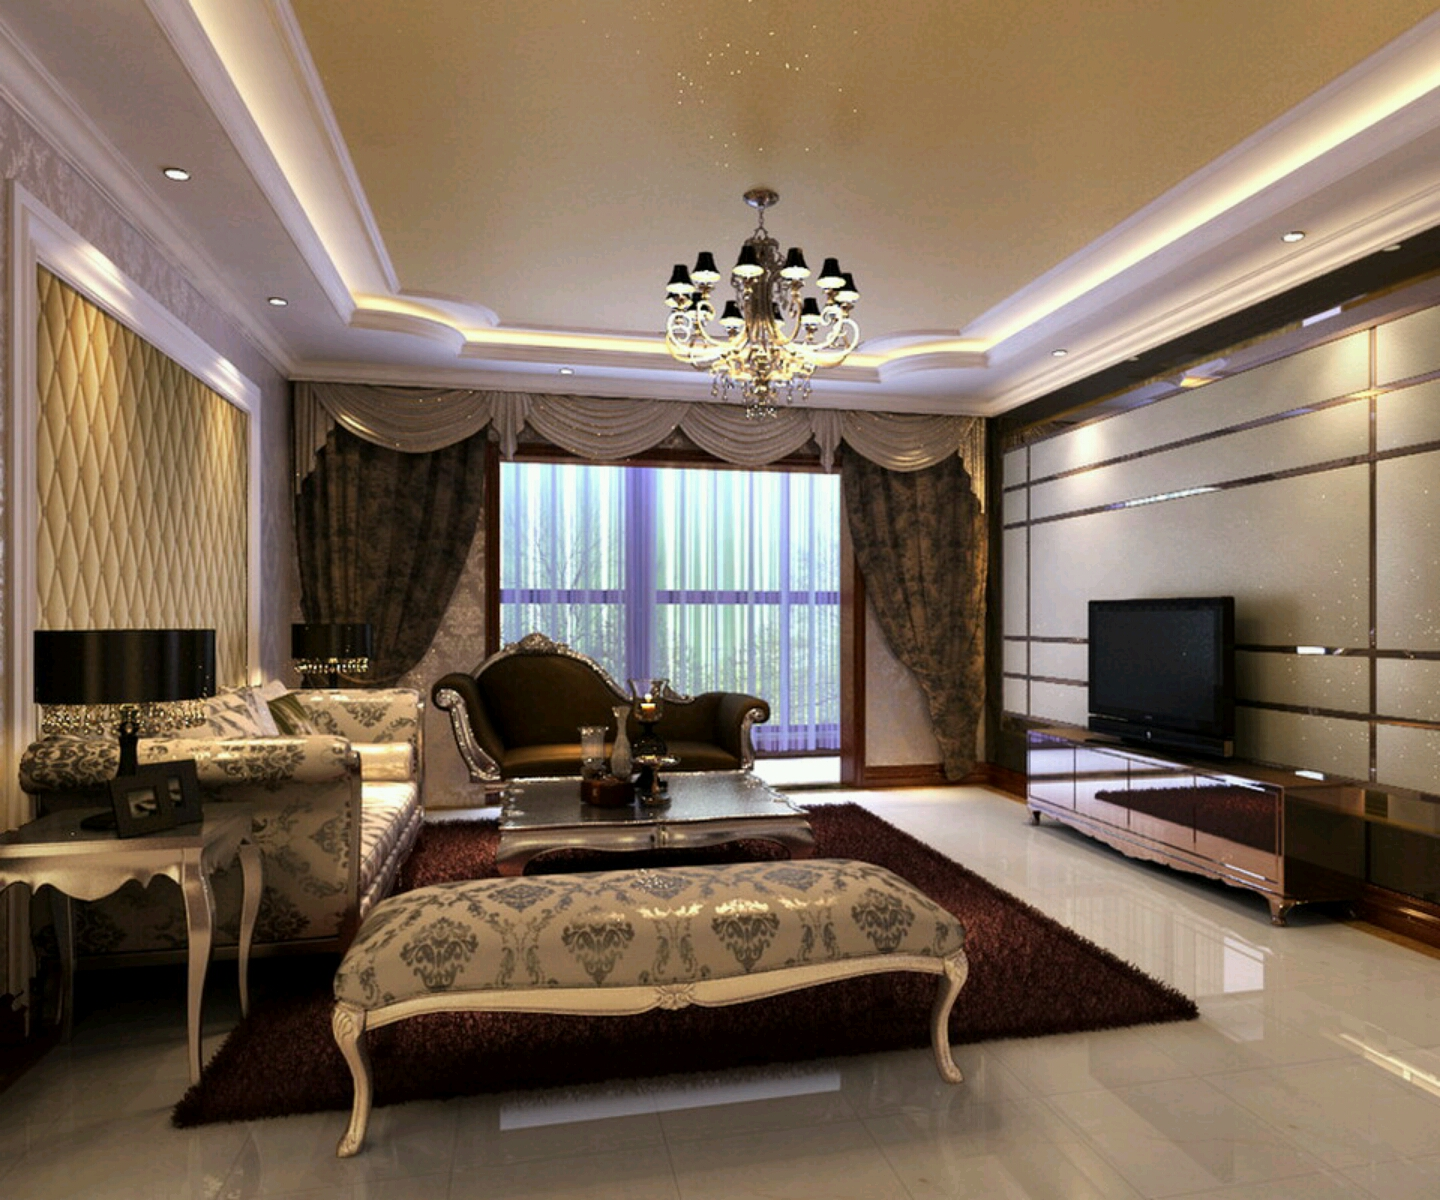 Home Design Ideas: New Home Designs Latest.: Luxury Homes Interior Decoration